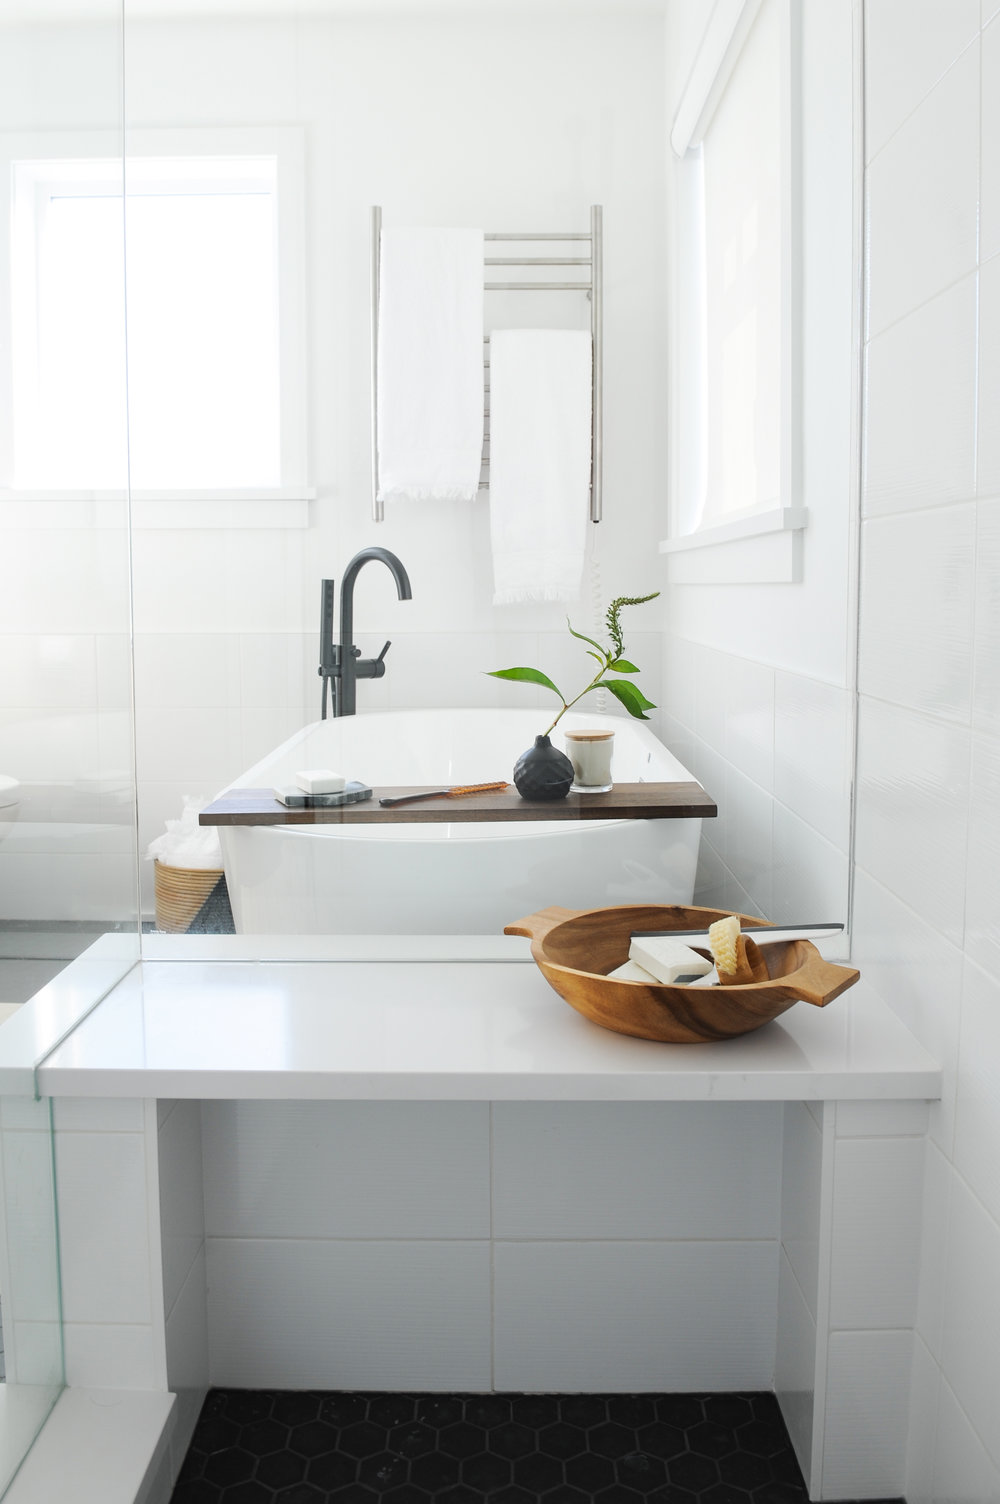 A beautiful tub sits in the background of a bright modern bathroom and a shower bench is pictured in the foreground.